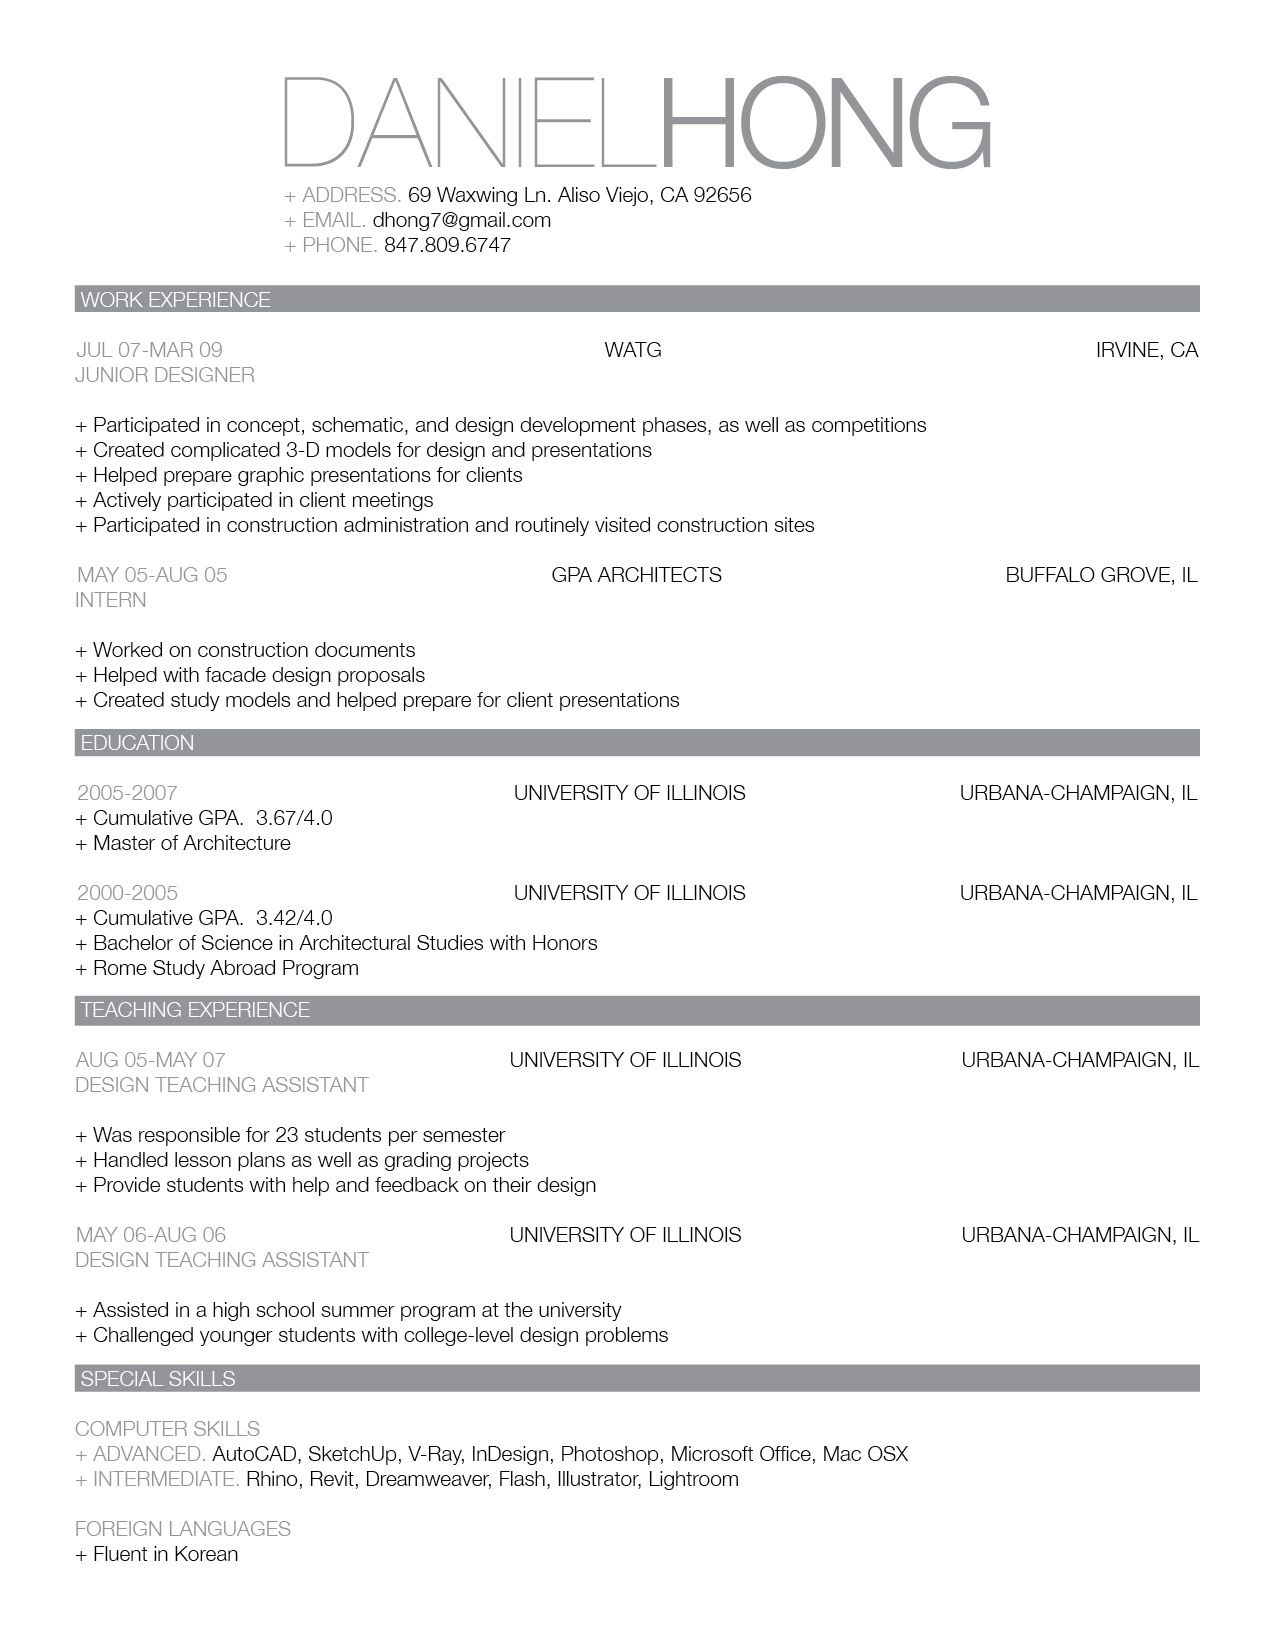 Example Of Professional Resume Updated Cv And Work Sample  Professional Resume Sample Resume